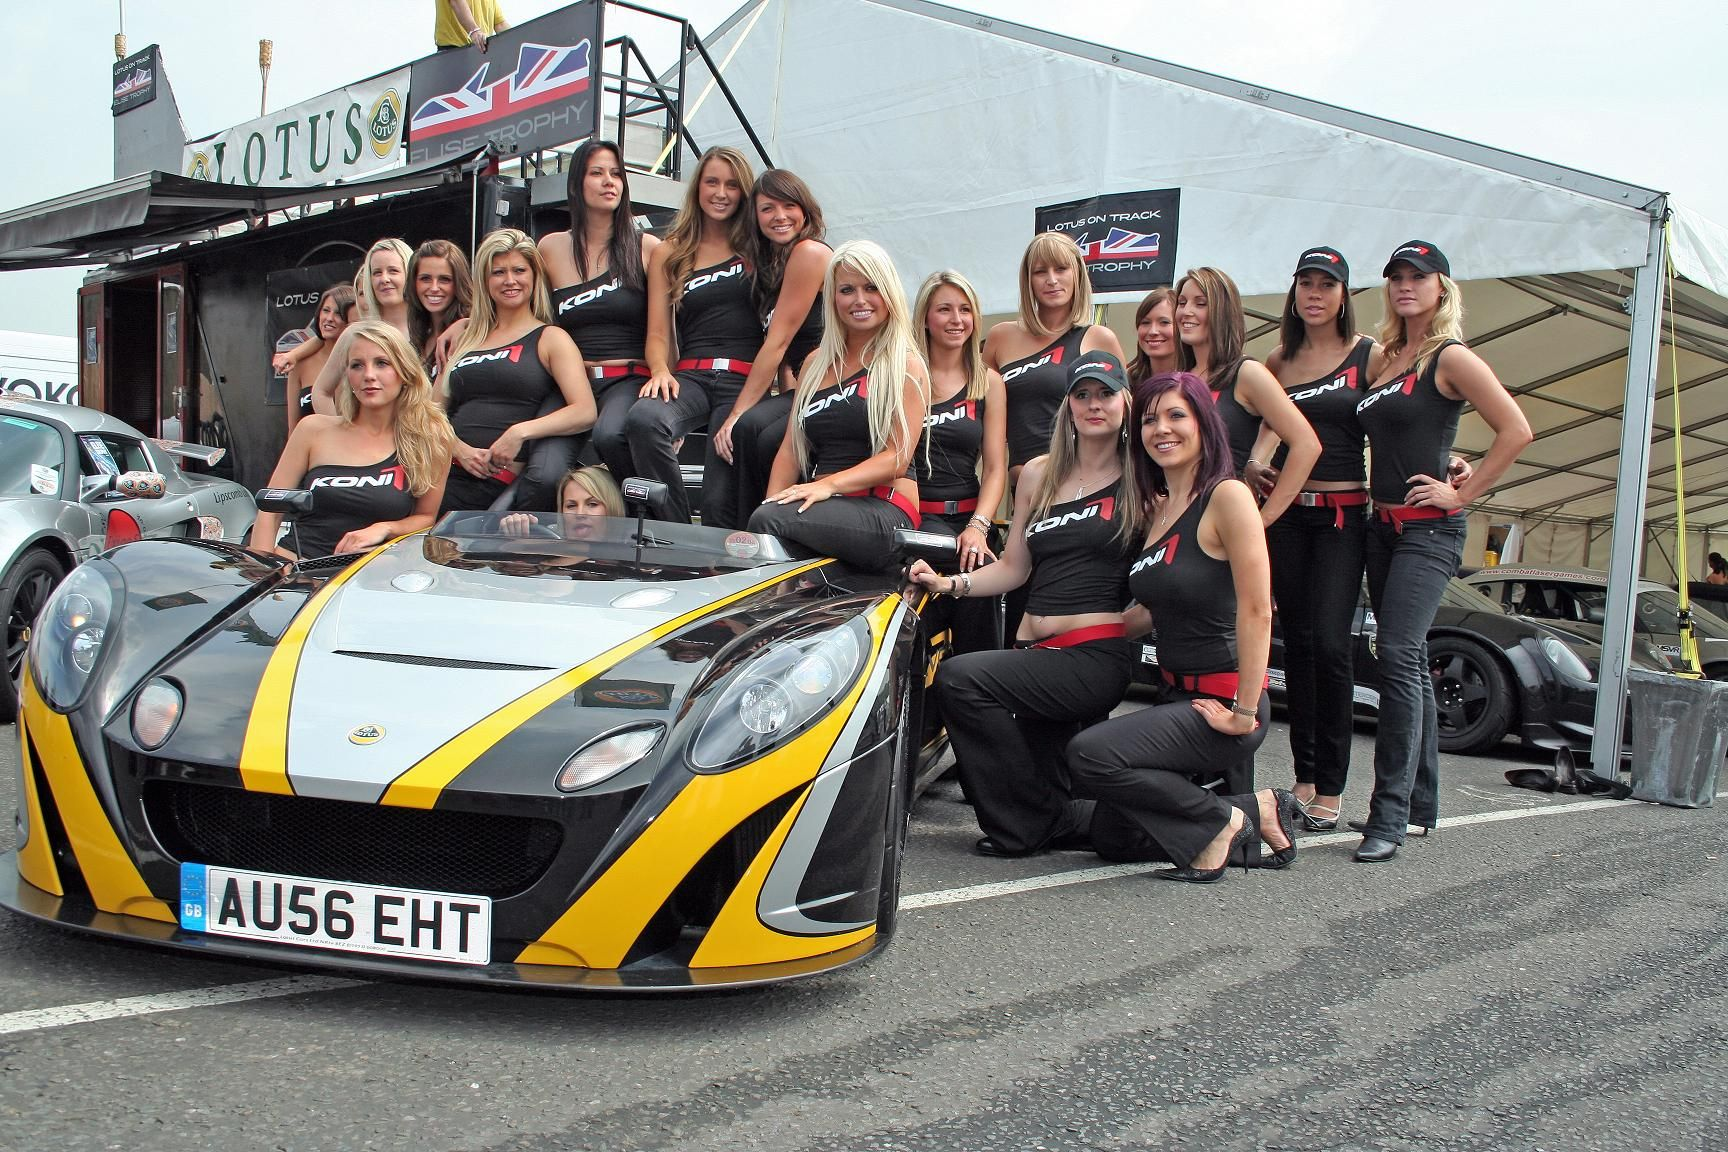 Lotus Elise and Pretty Girls, perfect combo! | Z-Car